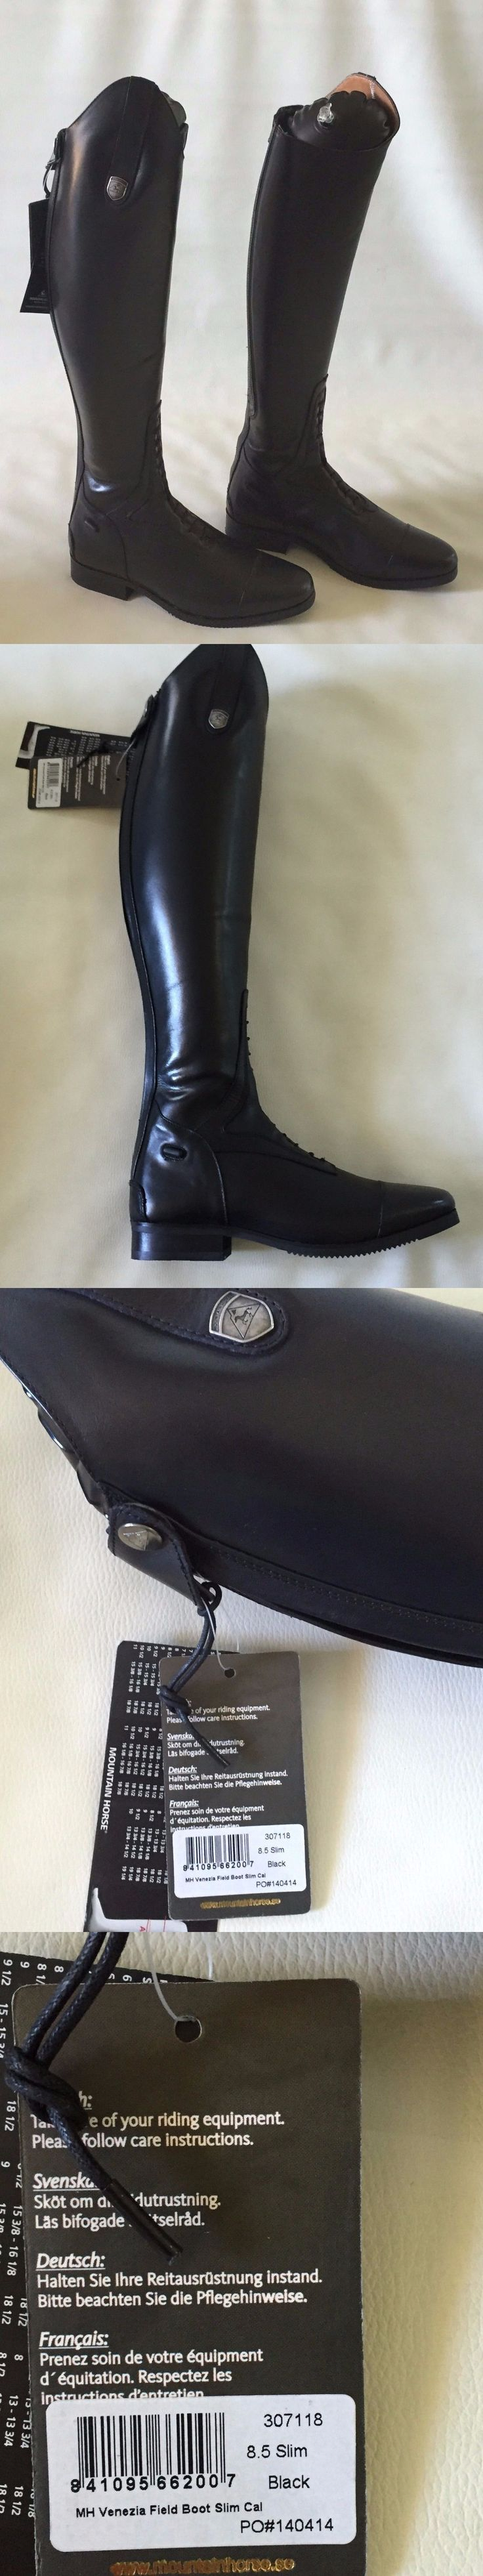 Tall Riding Boots 183382: New Mountain Horse Venezia Field Boots Ladies Sz 8.5 Slim Calf, Black -> BUY IT NOW ONLY: $126.6 on eBay!